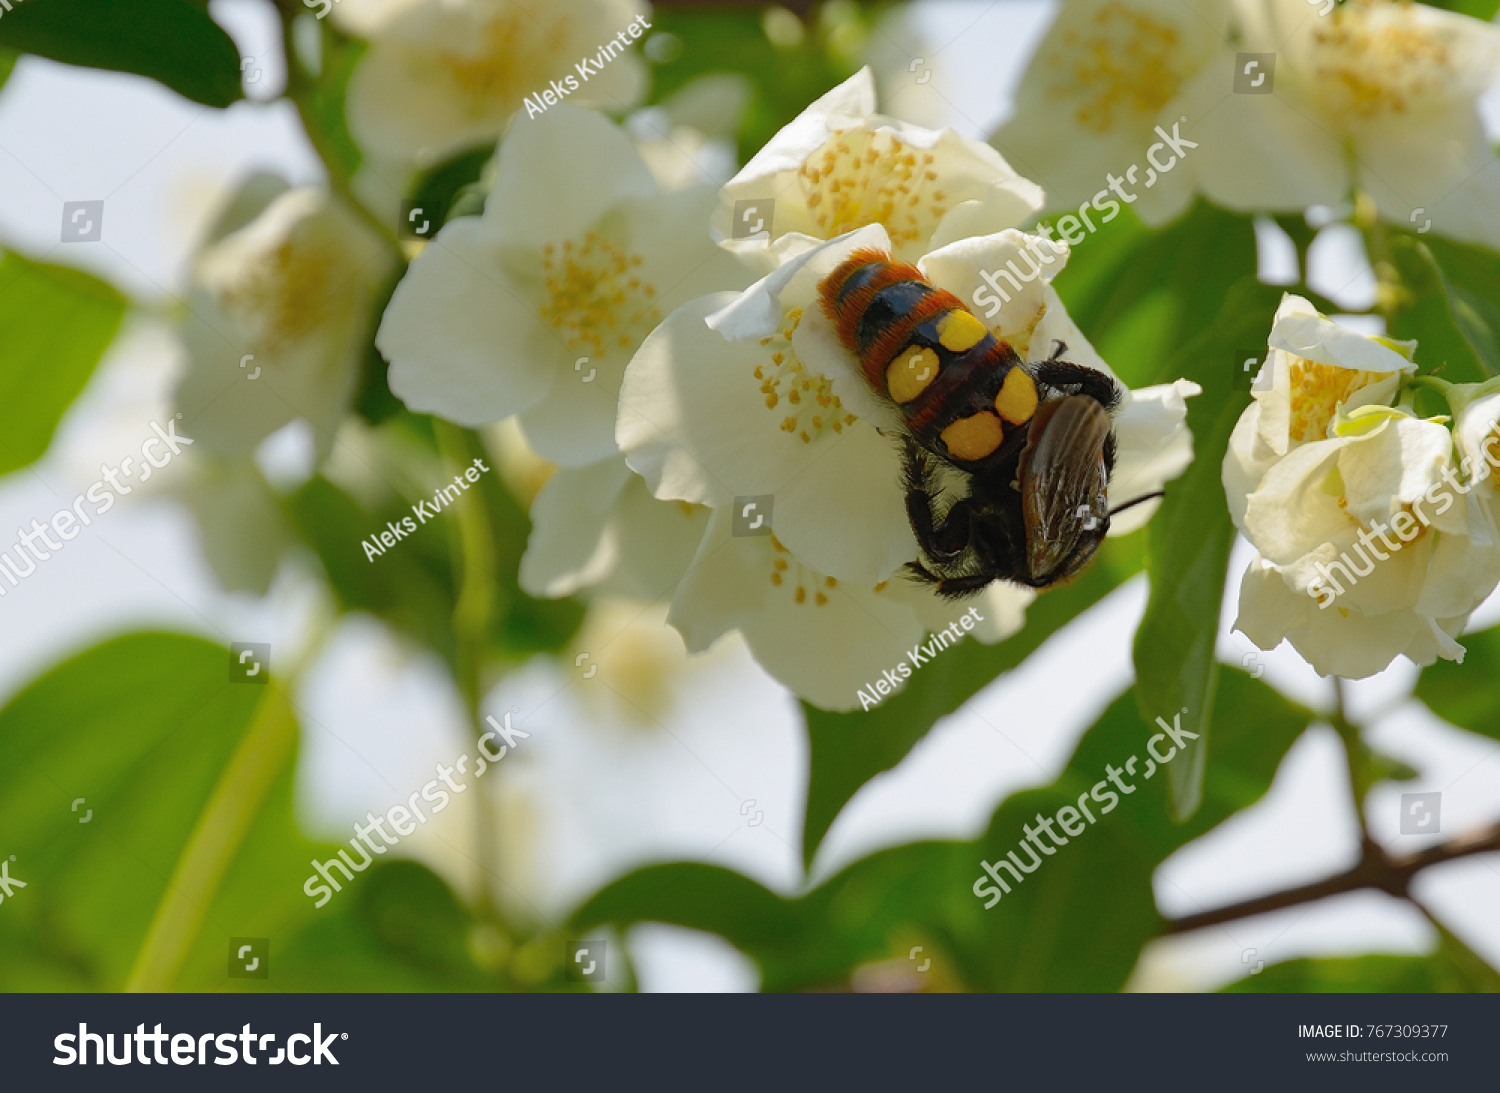 Summer background jasmine flowers insect hornet stock photo summer background of jasmine flowers with insect hornet delicate white yellow jasmine flowers on blurred izmirmasajfo Images